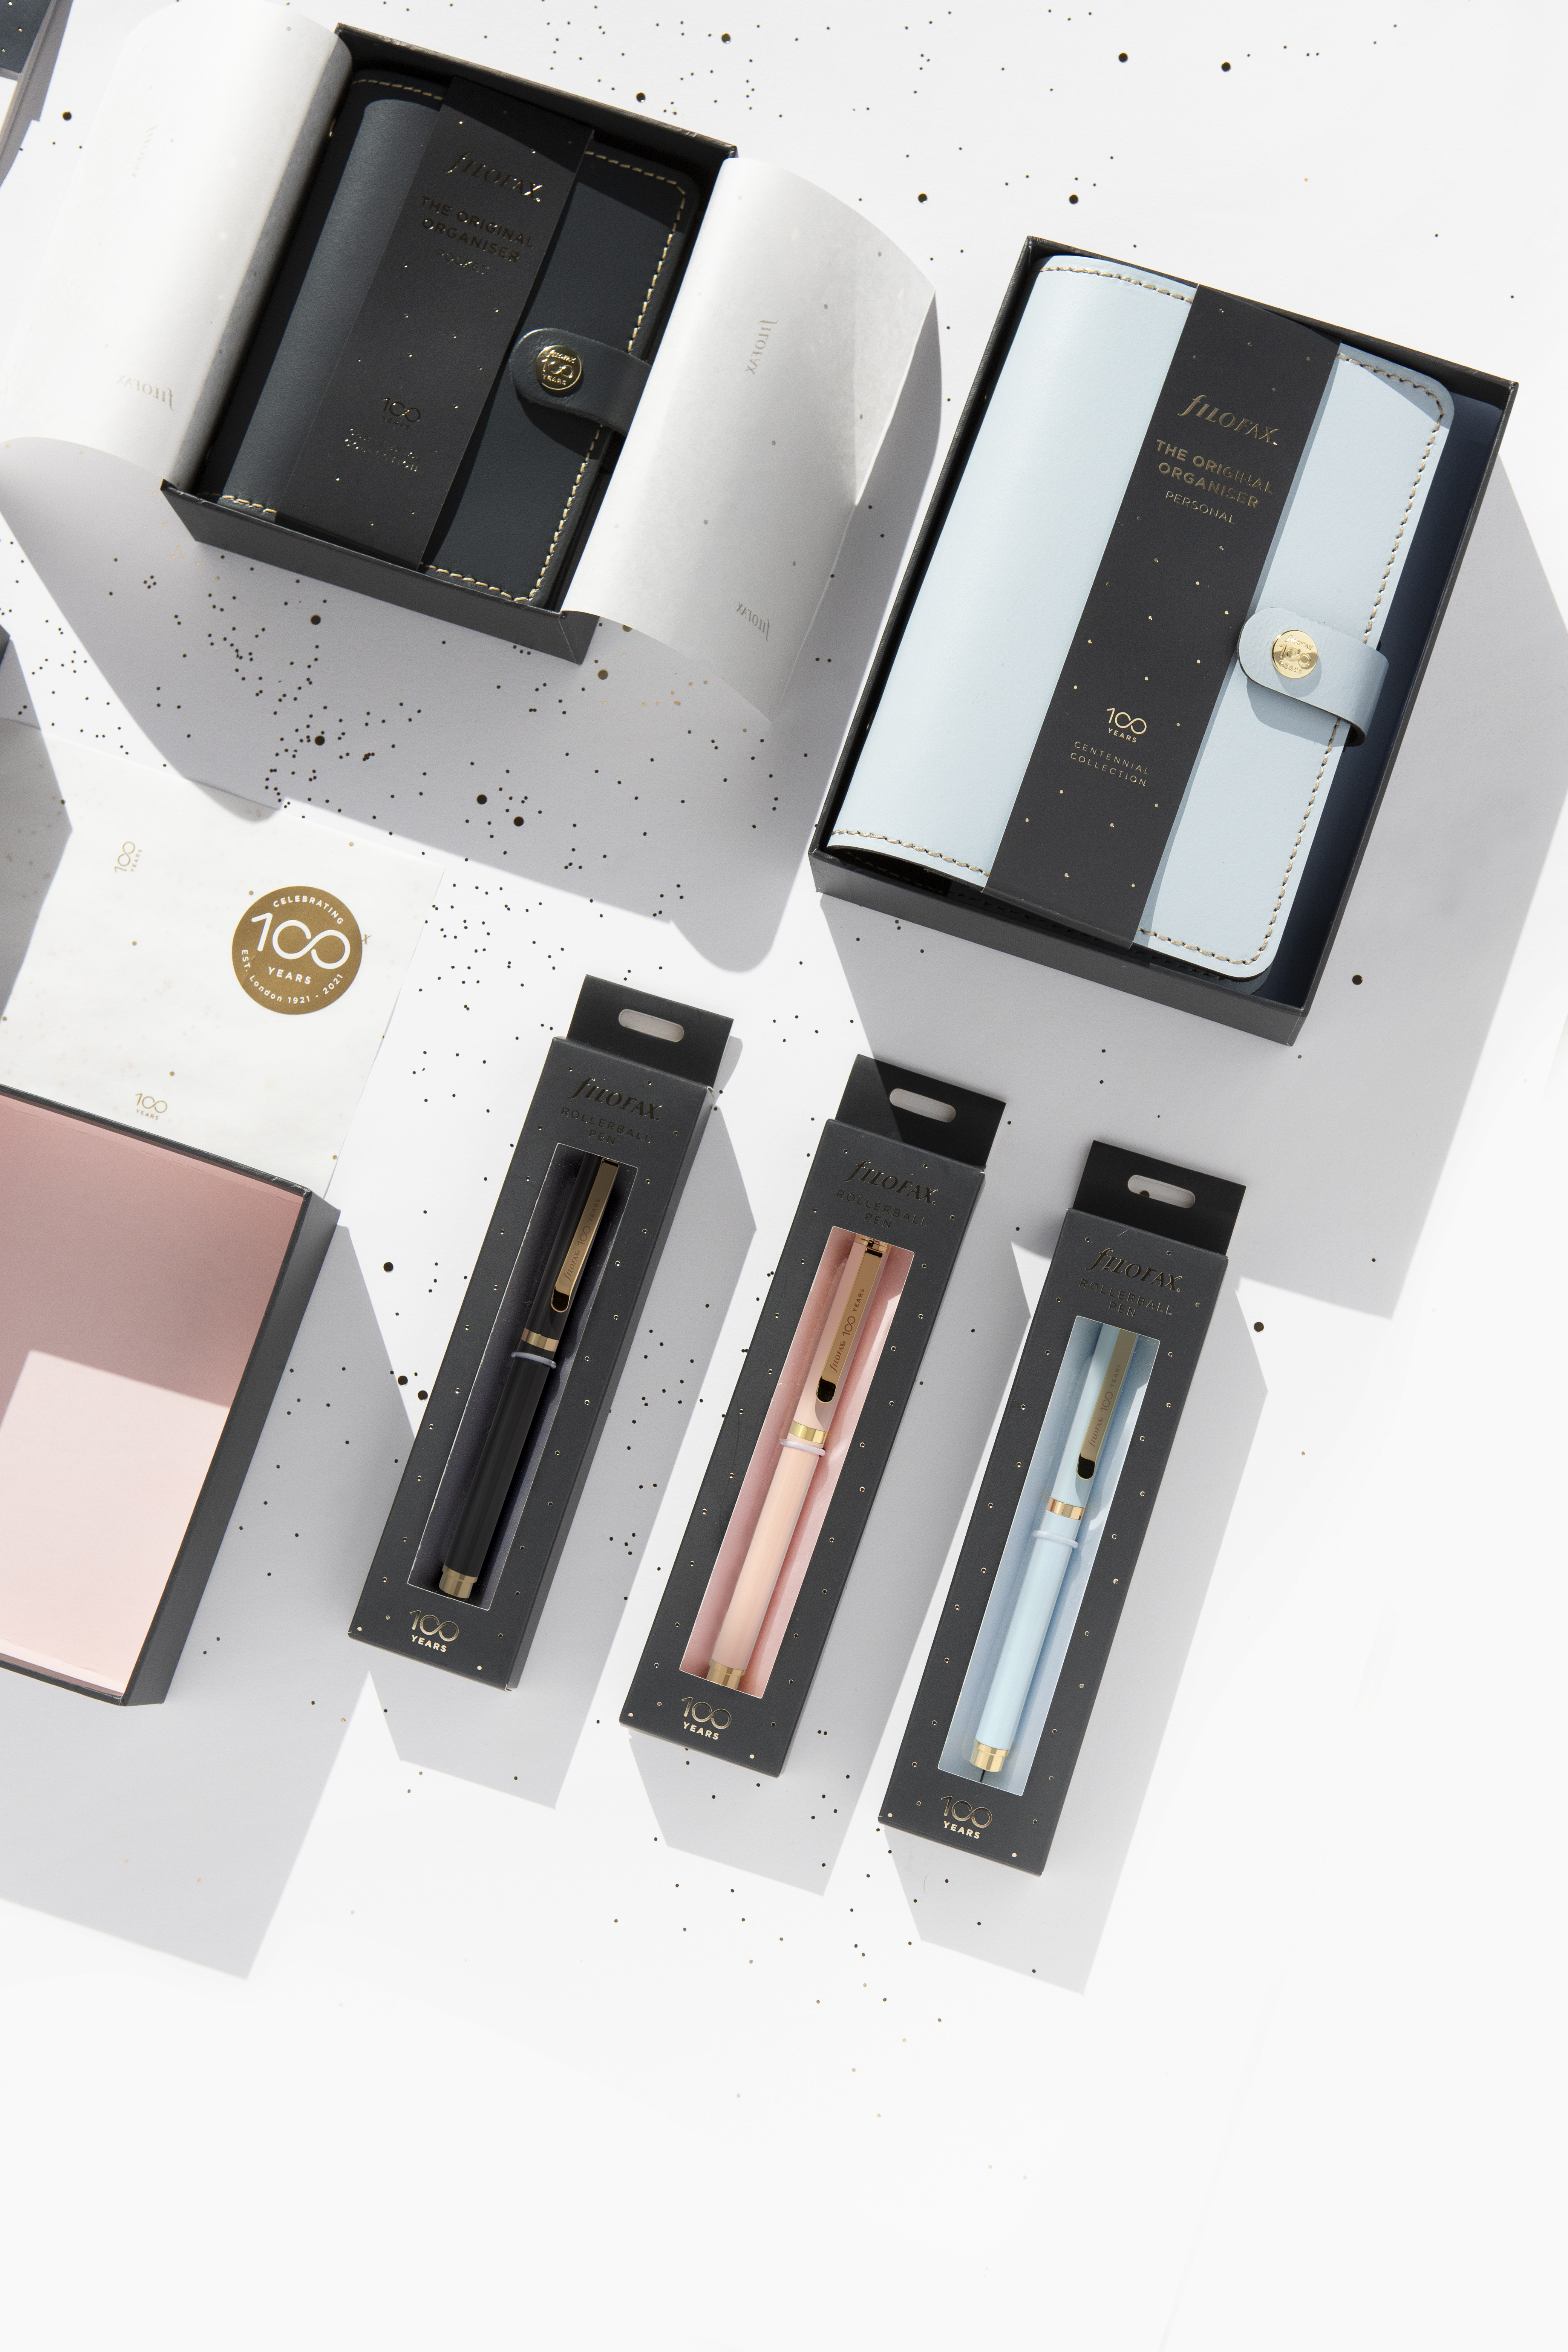 Filofax Centennial Collection - Lifestyle_Packaging